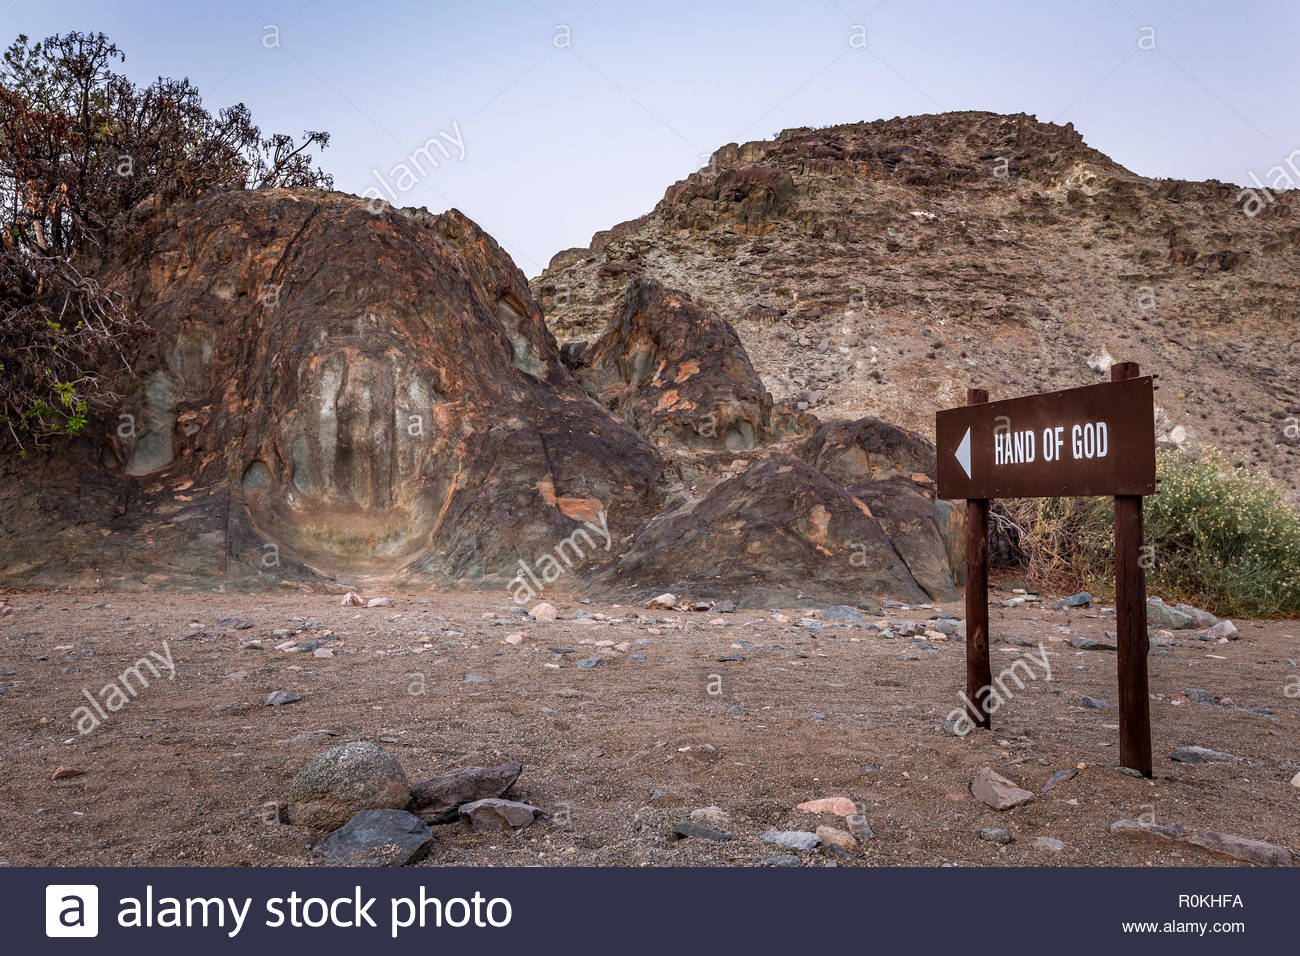 A natural rock formation called 'The Hand of God' found in the Richtersveld National Park - Stock Image